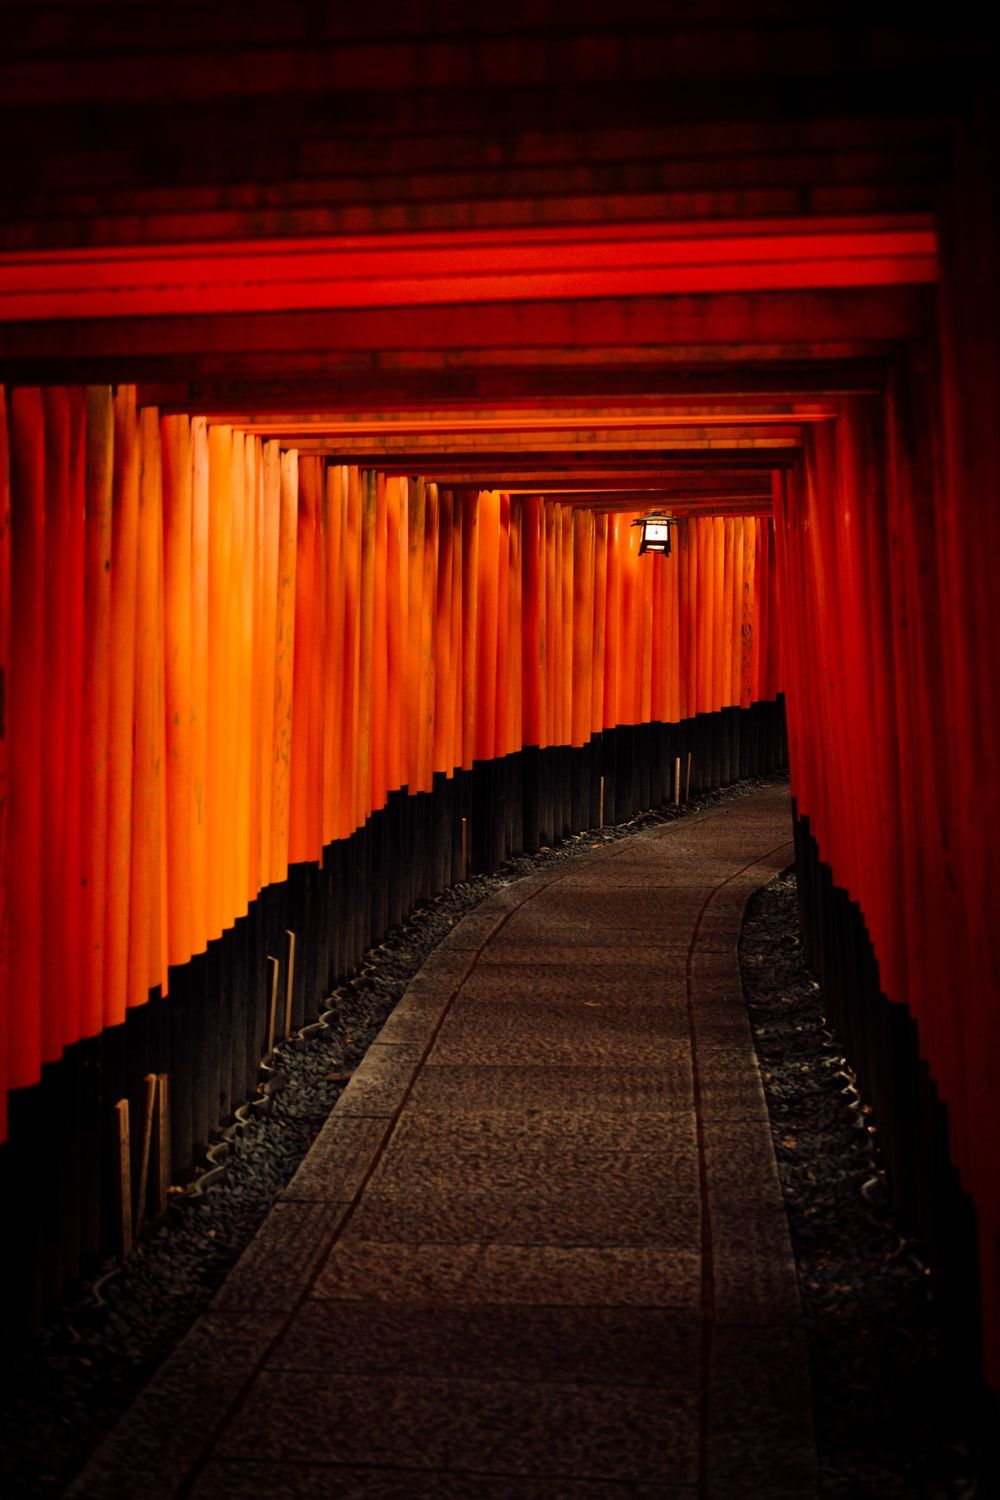 Fushimi Inari Taisha Kyoto Japan Pictures Download Free